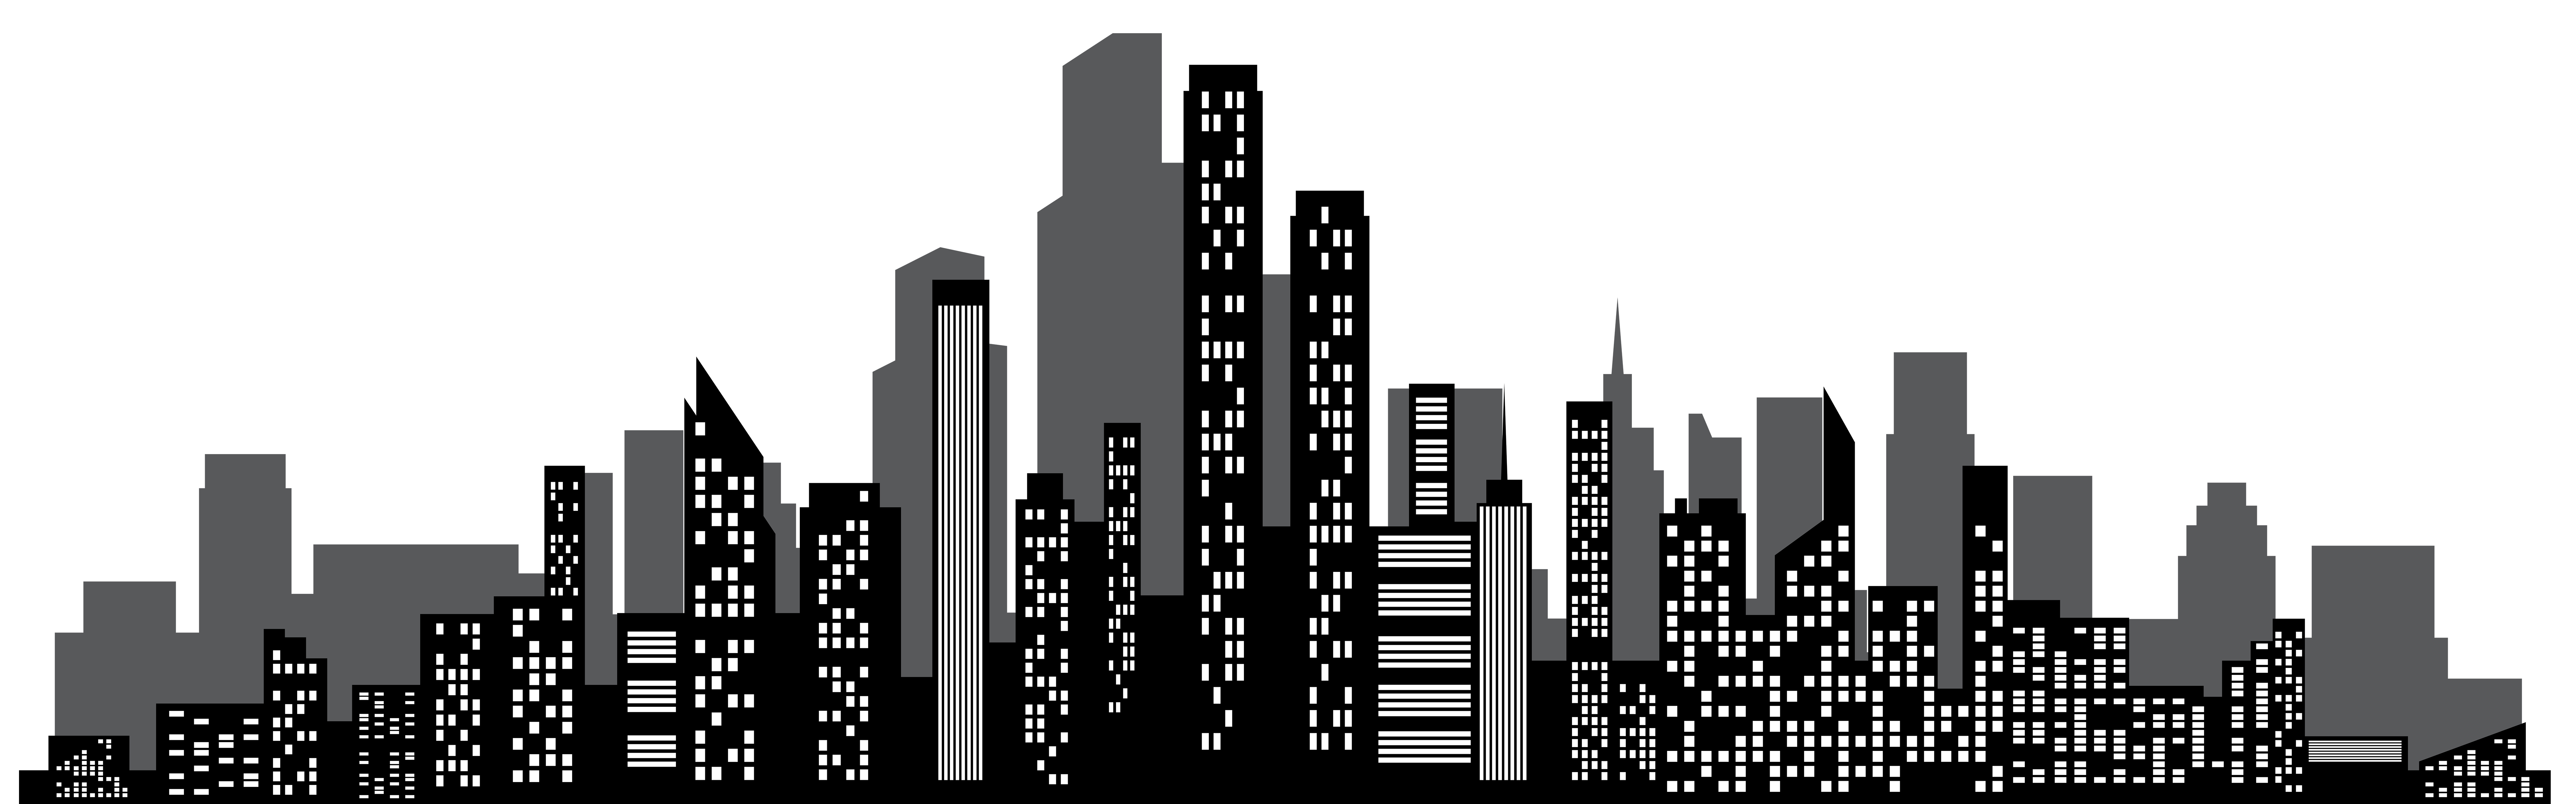 City scape clipart 20 free Cliparts | Download images on ...